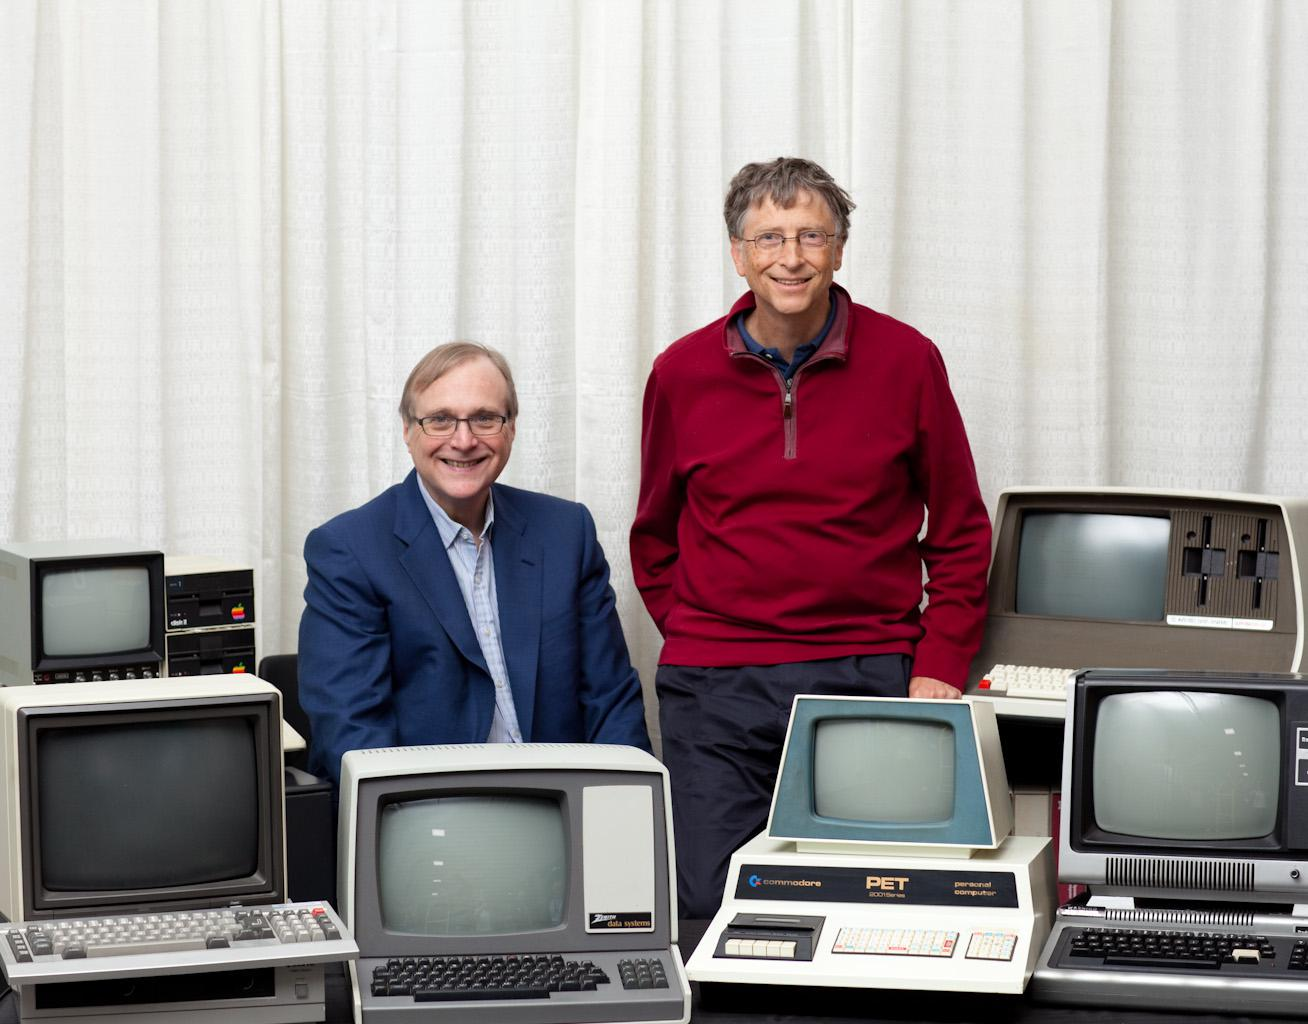 Microsoft founders Bill Gates and Paul Allen recreate an iconic 1981 shot of the pair posing among vintage computers. Taken April 2, 2013 at the Living Computer Museum in Seattle. Credit: Courtesy of the Living Computer Museum.